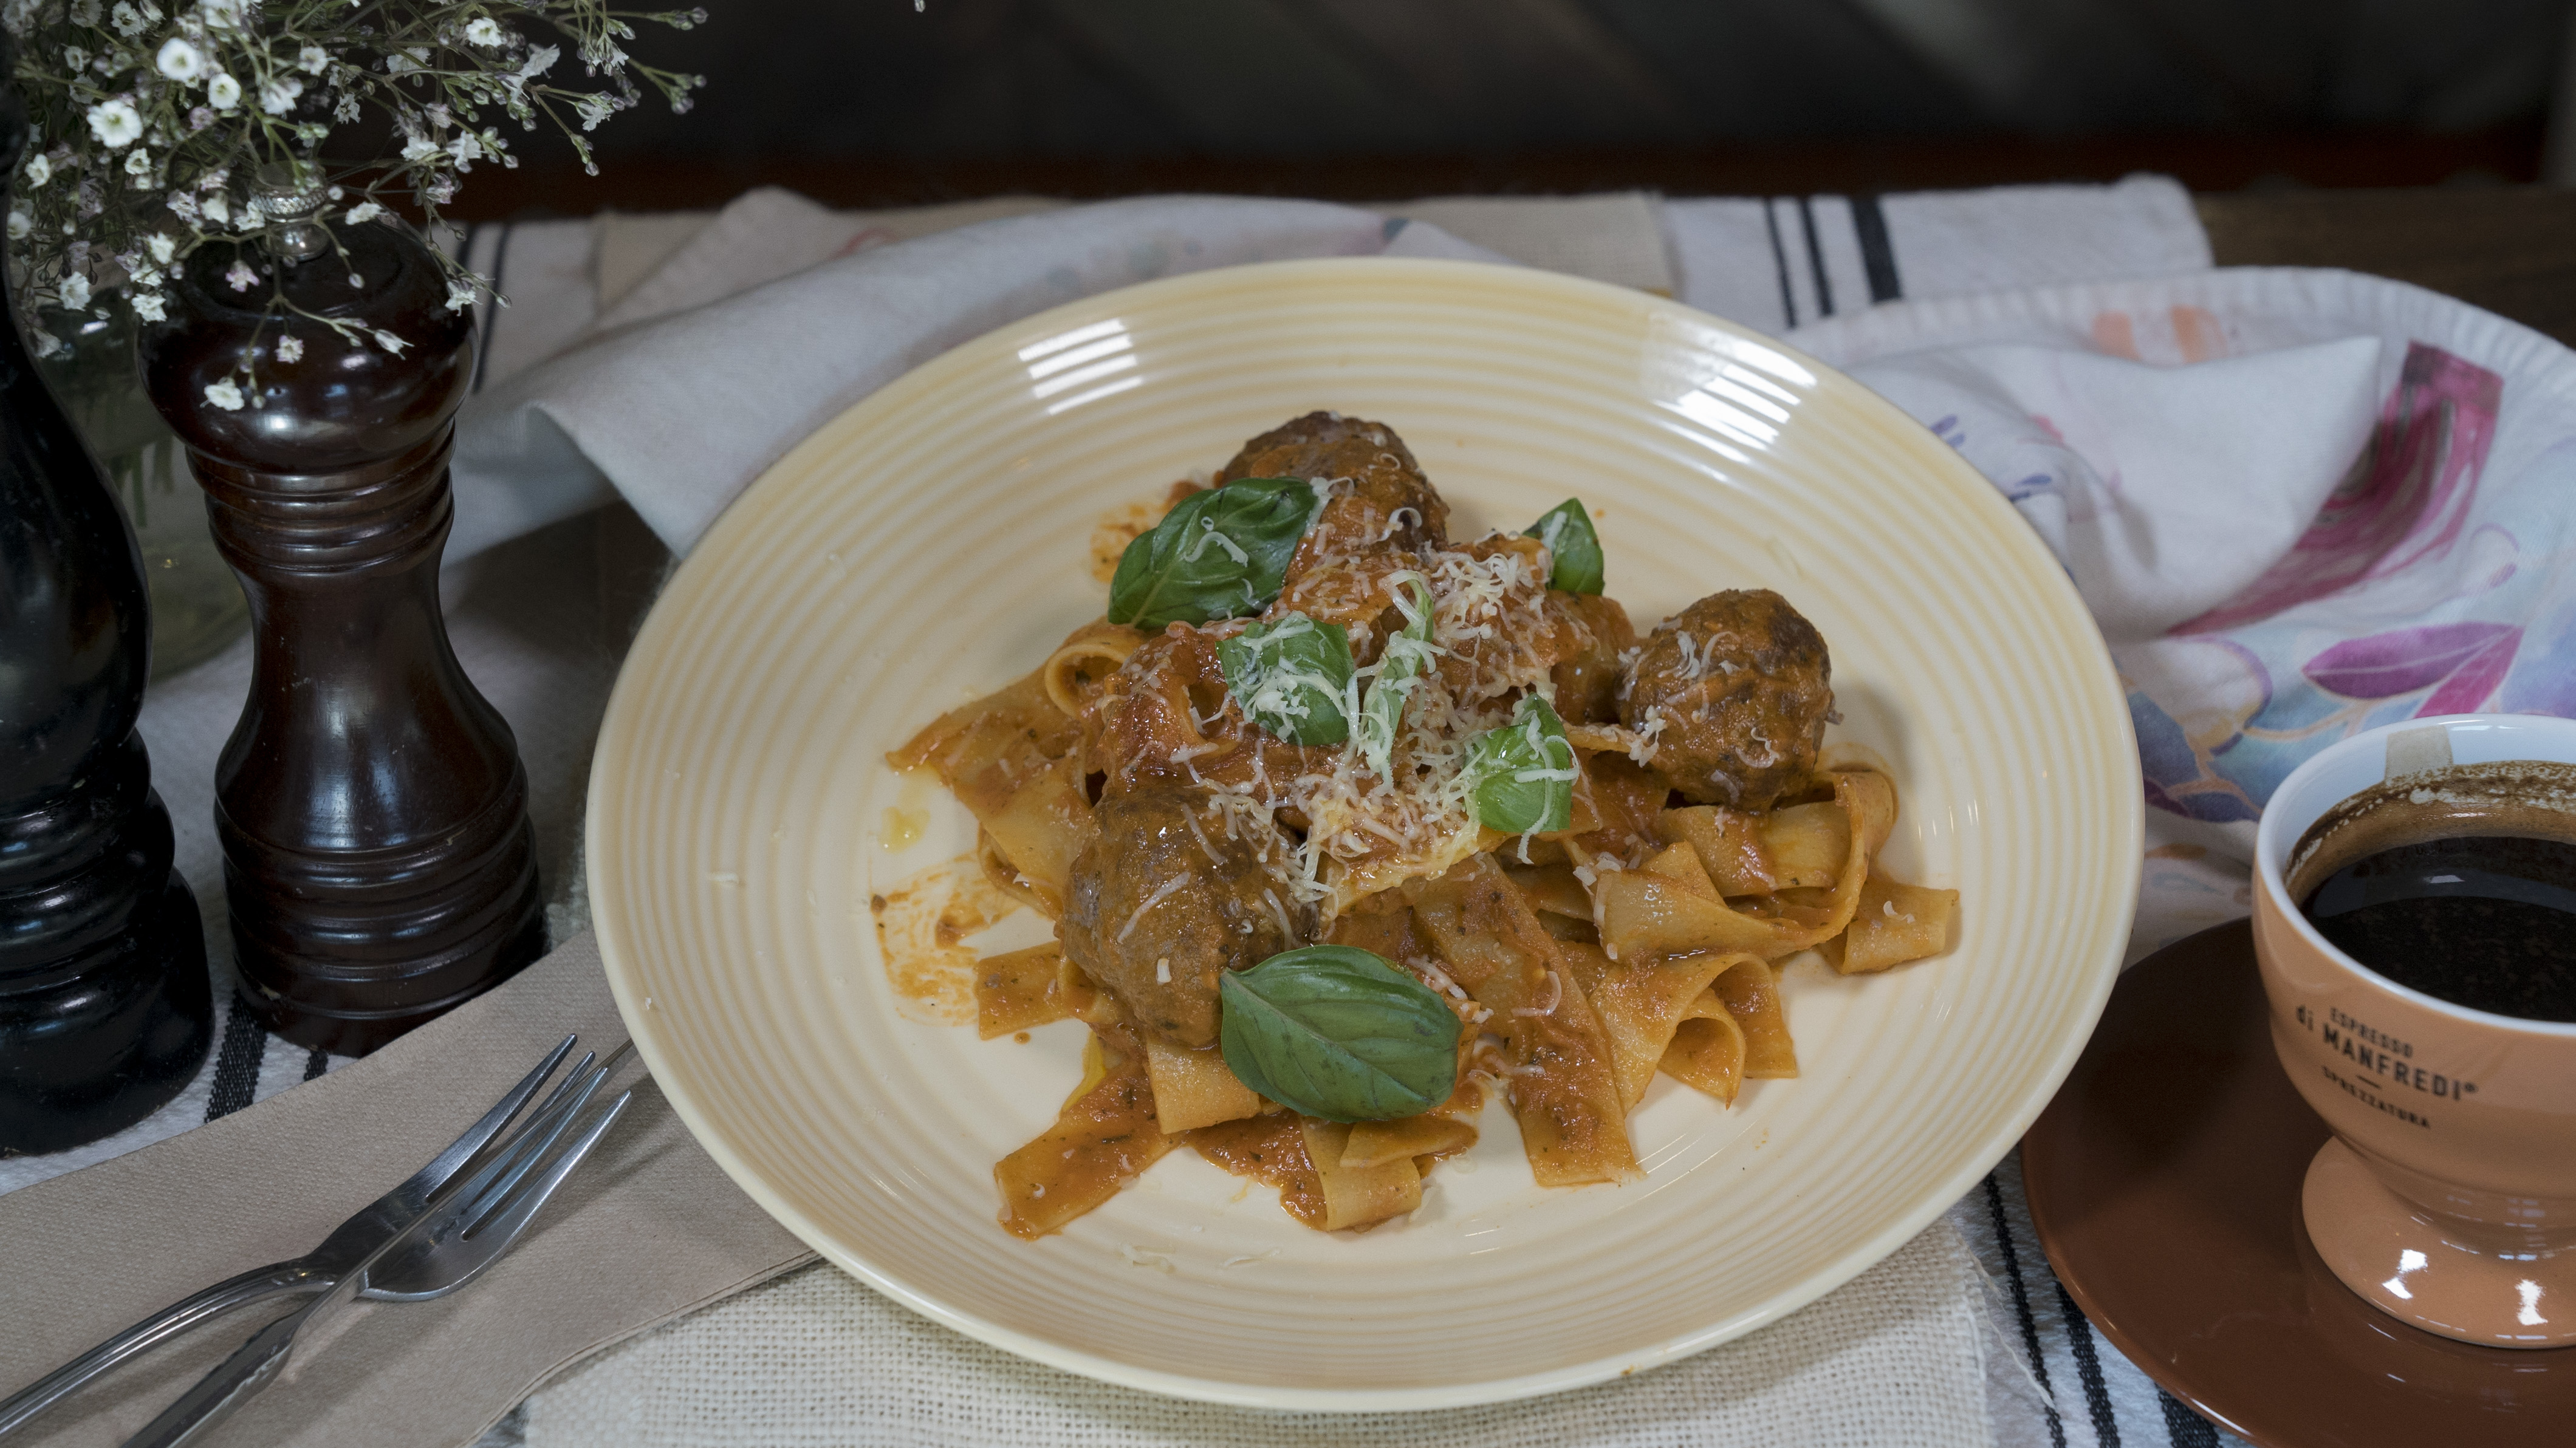 Pappardelle with meatball